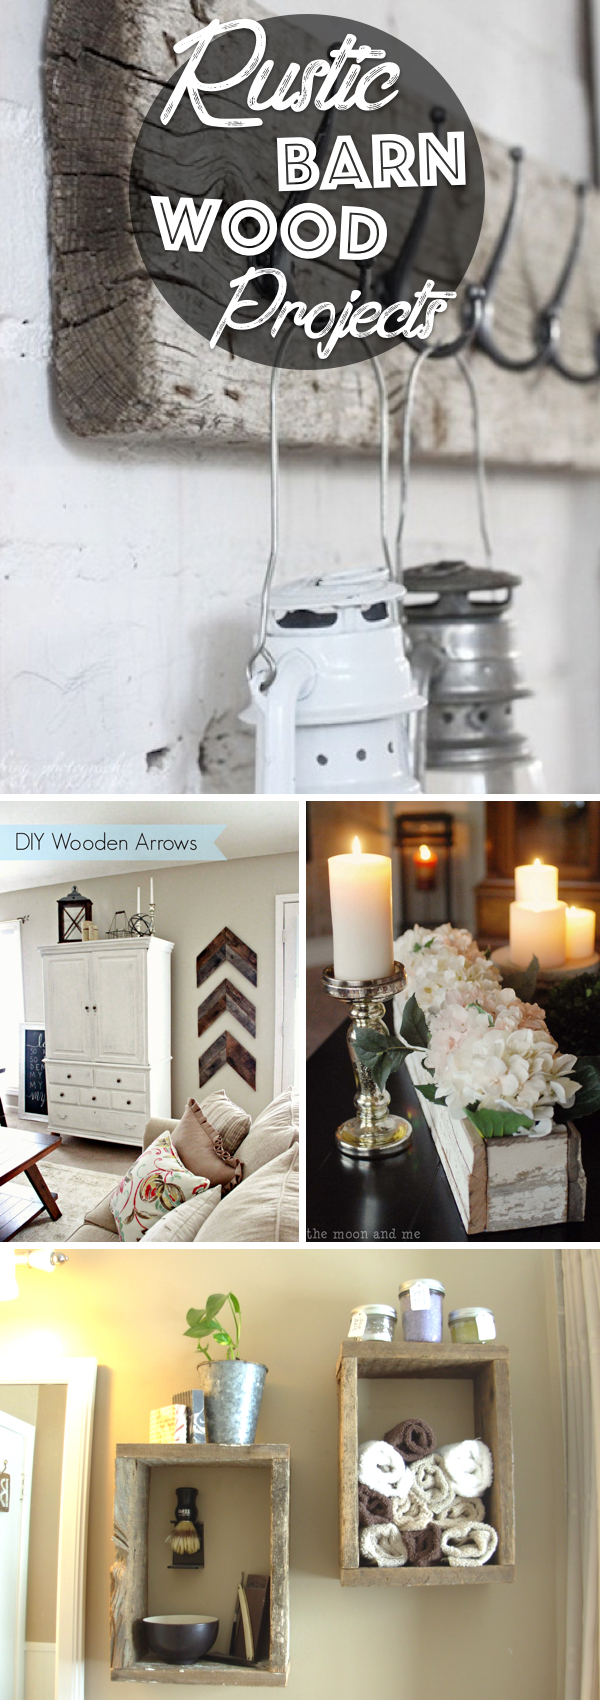 Rustic Barn Wood Projects